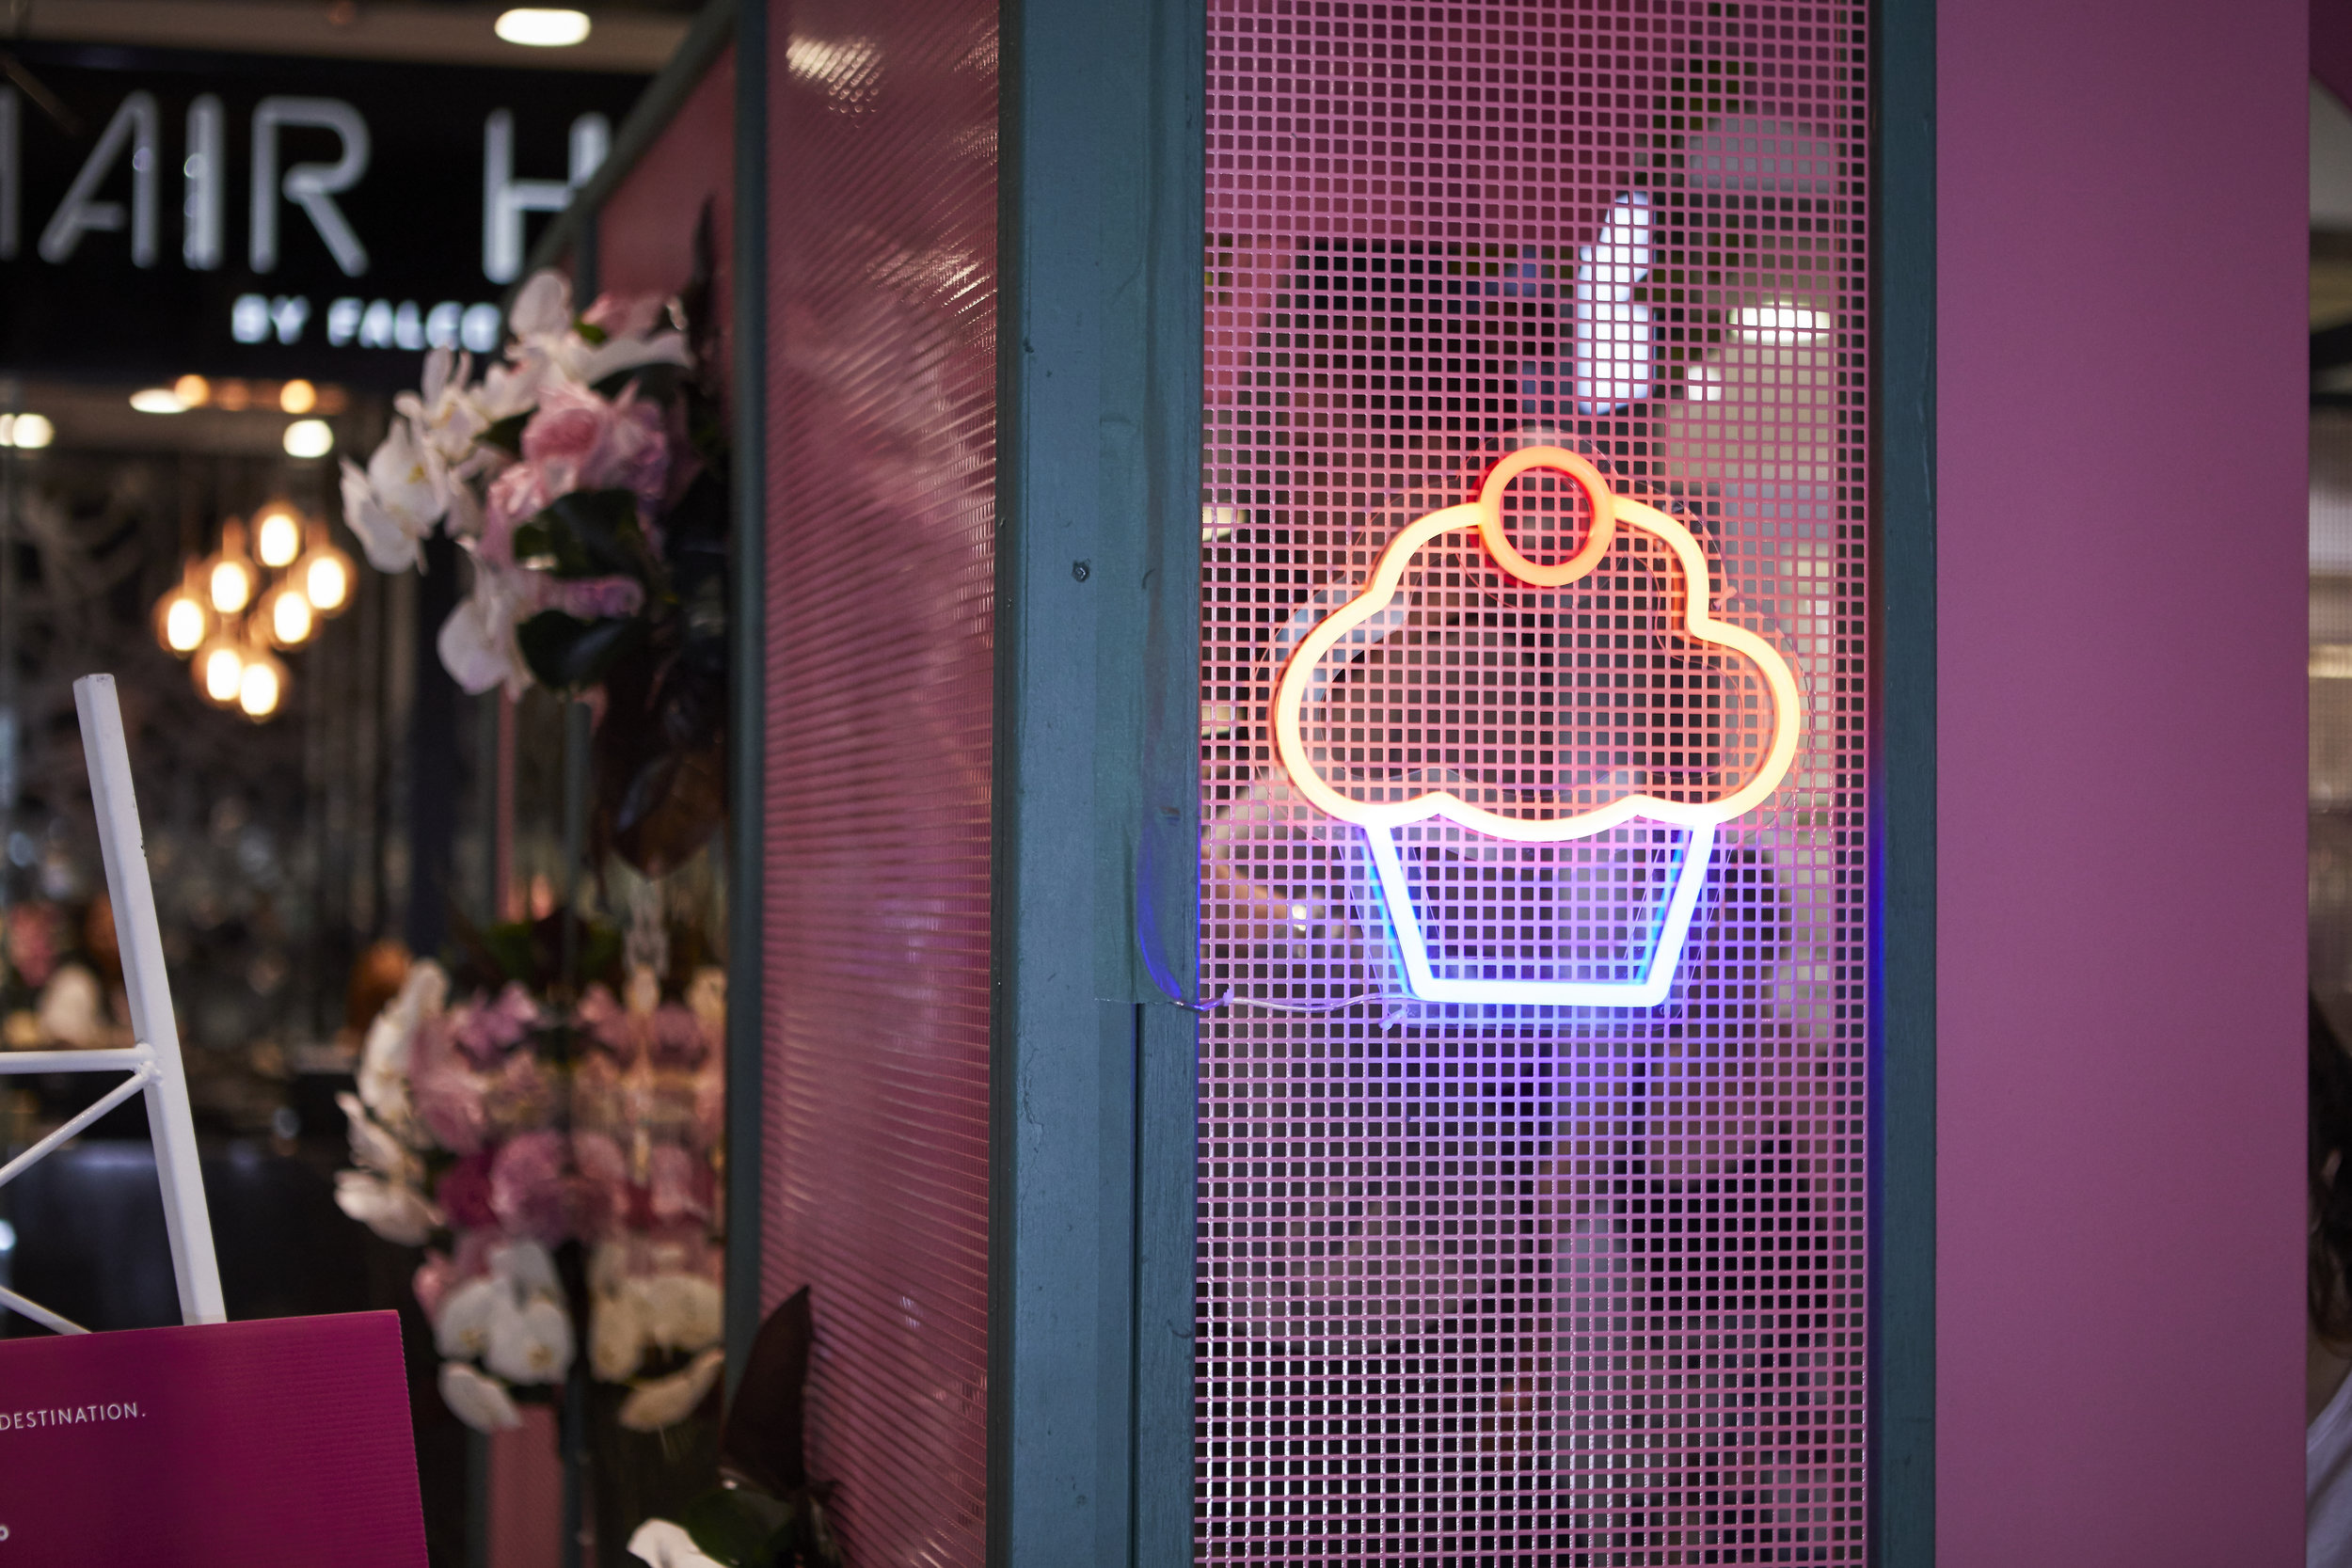 Candy Place - ISPT/Camberwell Place2019